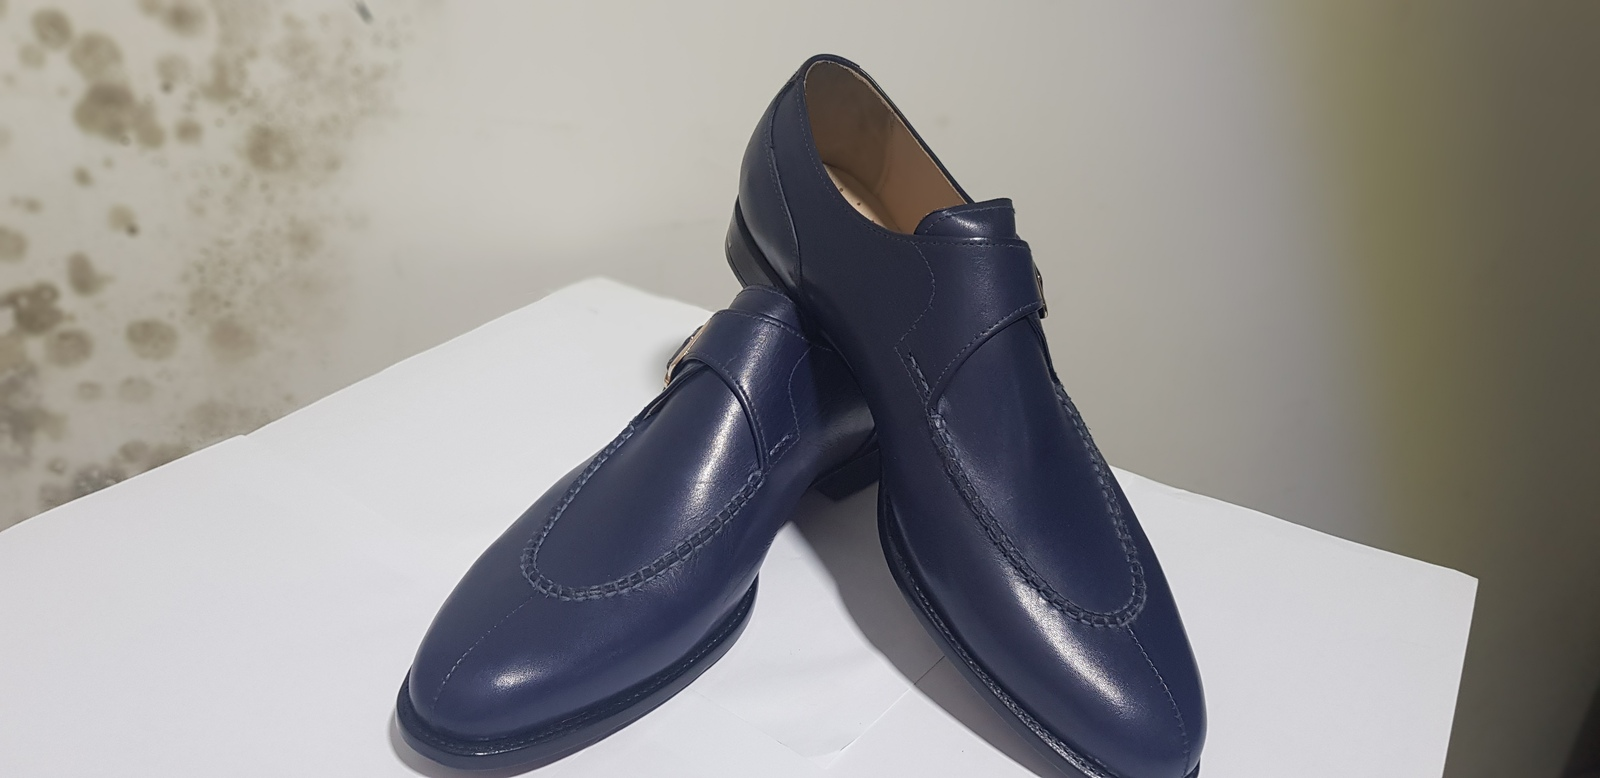 Primary image for New Handmade Men's Blue Monk Strap Formal Dress Shoes